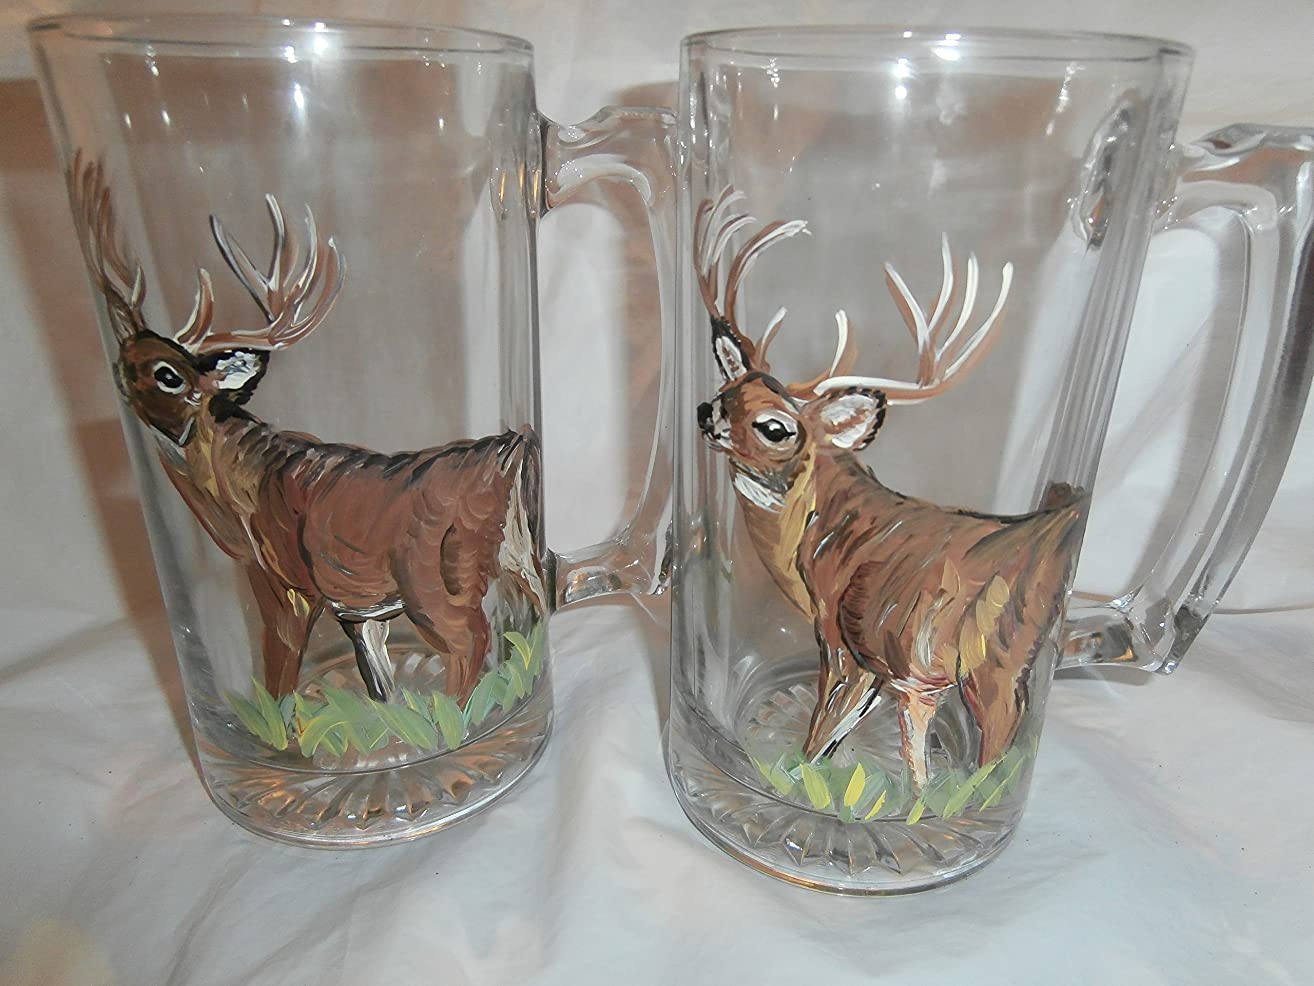 Hand painted deers. Set of 2 beer steins(mugs)